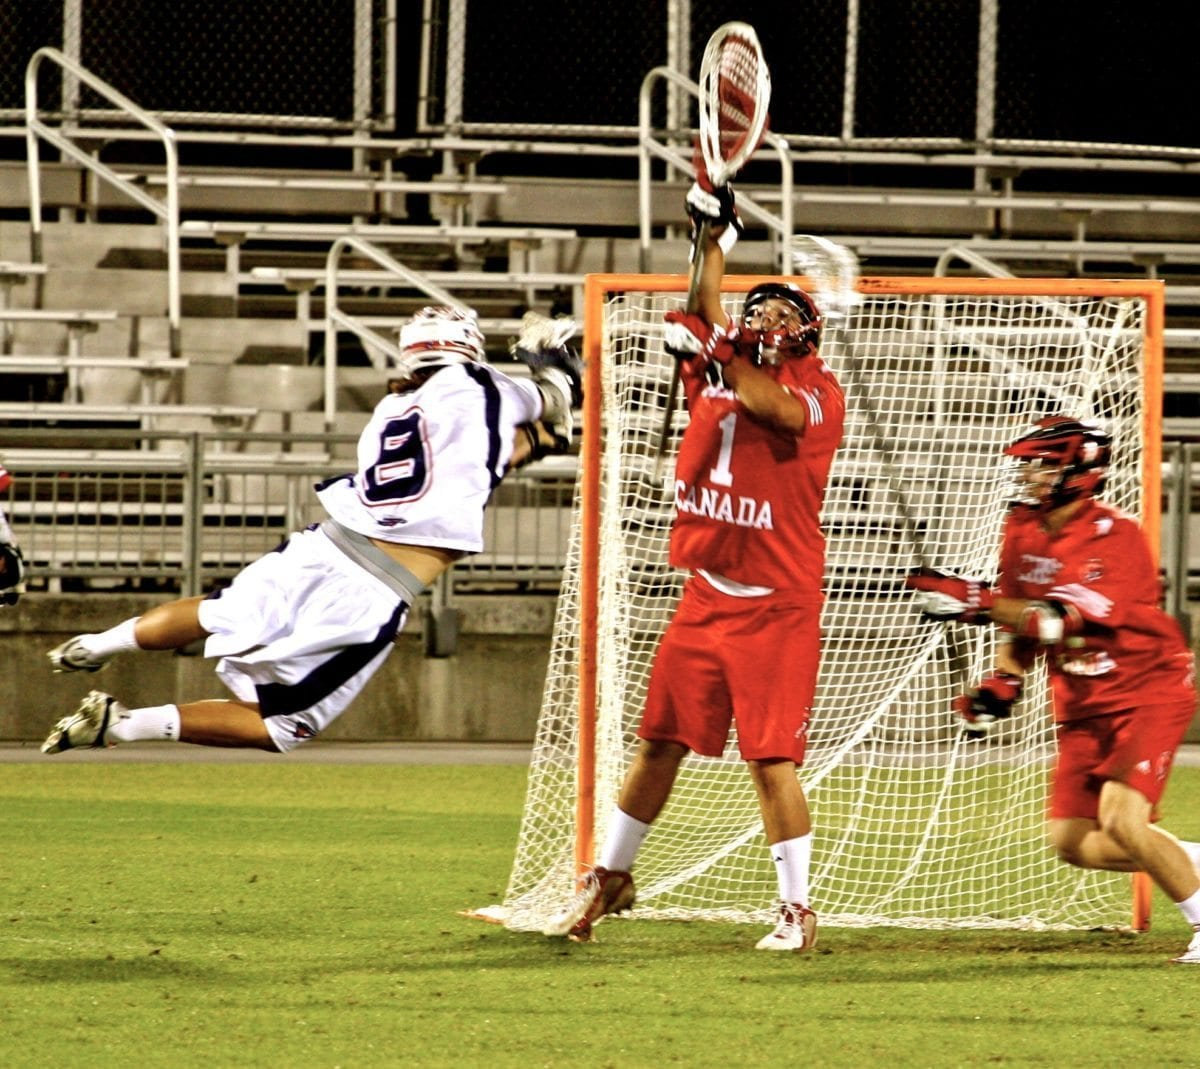 matt_striebel_usa_lacrosse